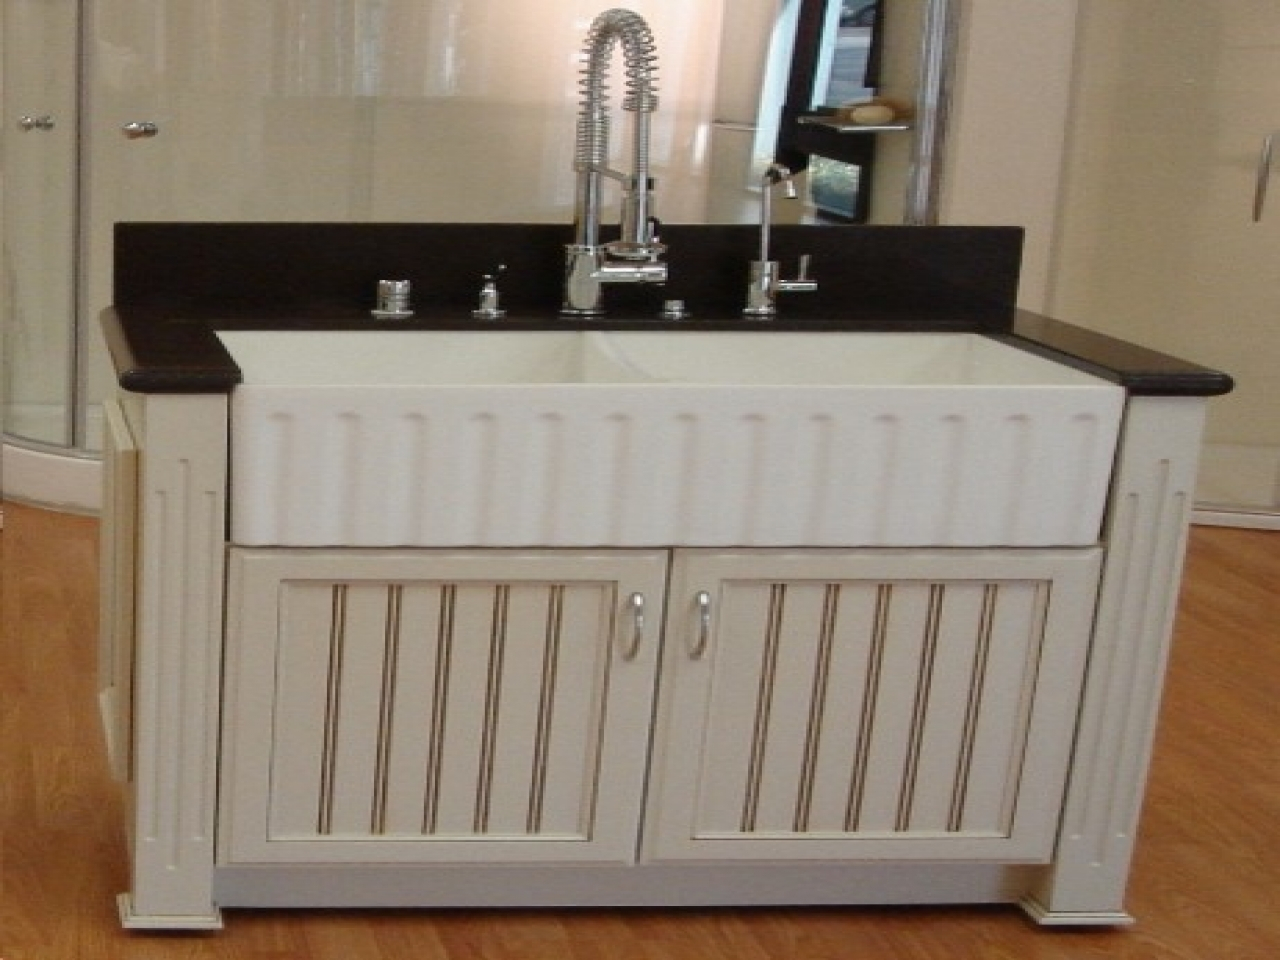 Elite Farmhouse Sink Bathroom Vanity | Spirit Decoration inside Good quality Bathroom Farm Sink Vanity